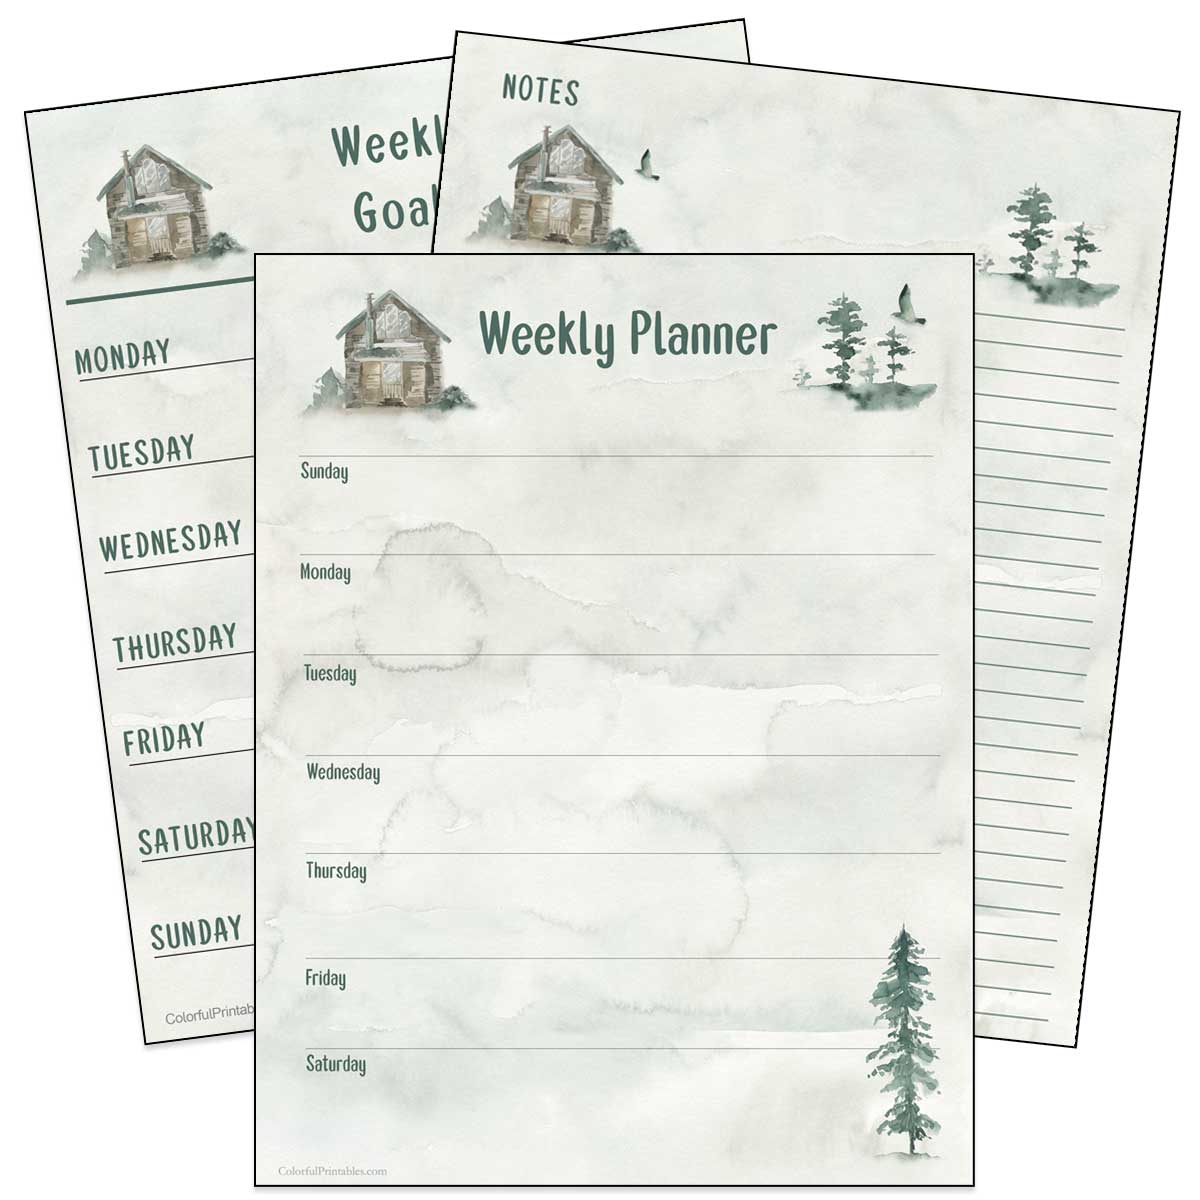 Free Printables for Notes, weekly planner and goals using Wild Pinery